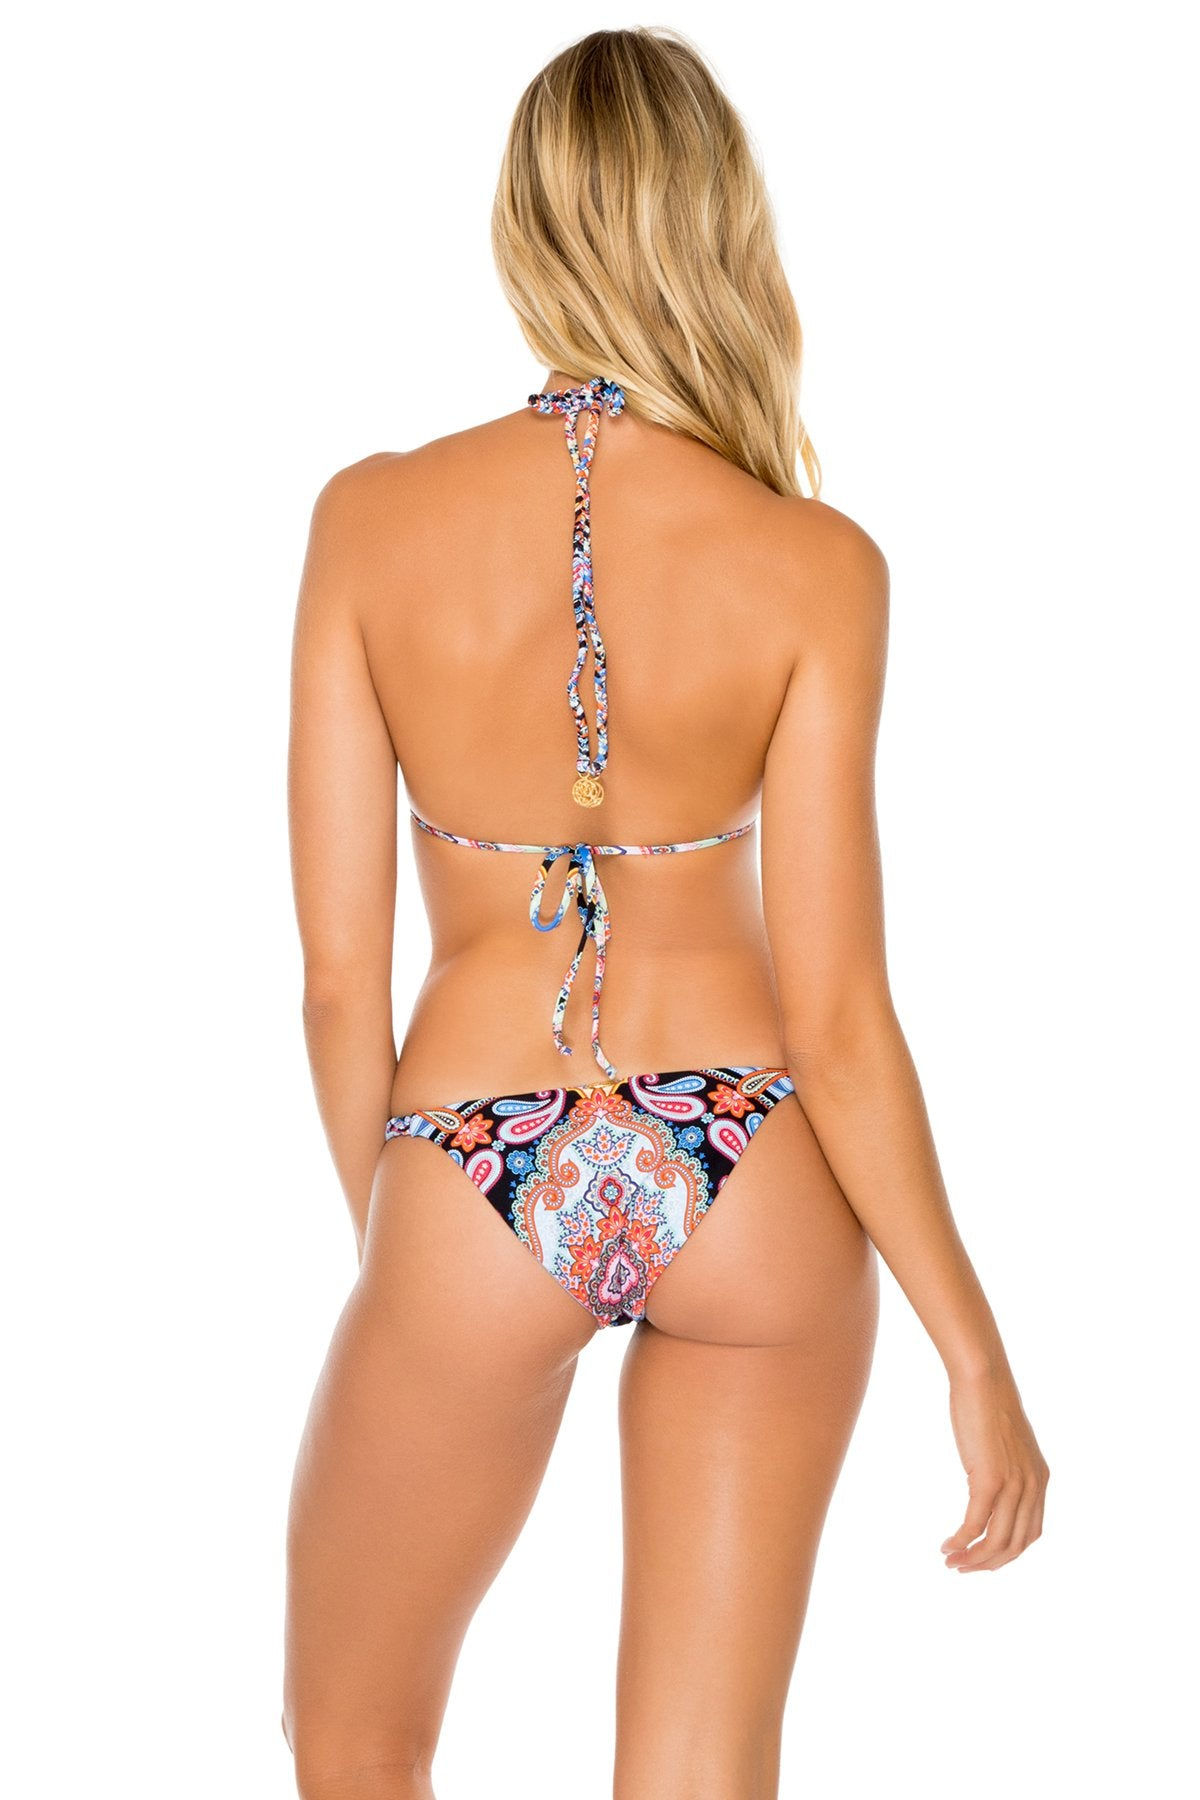 MAESTRANZA - Triangle Top & Double Braided Moderate Bottom • Black